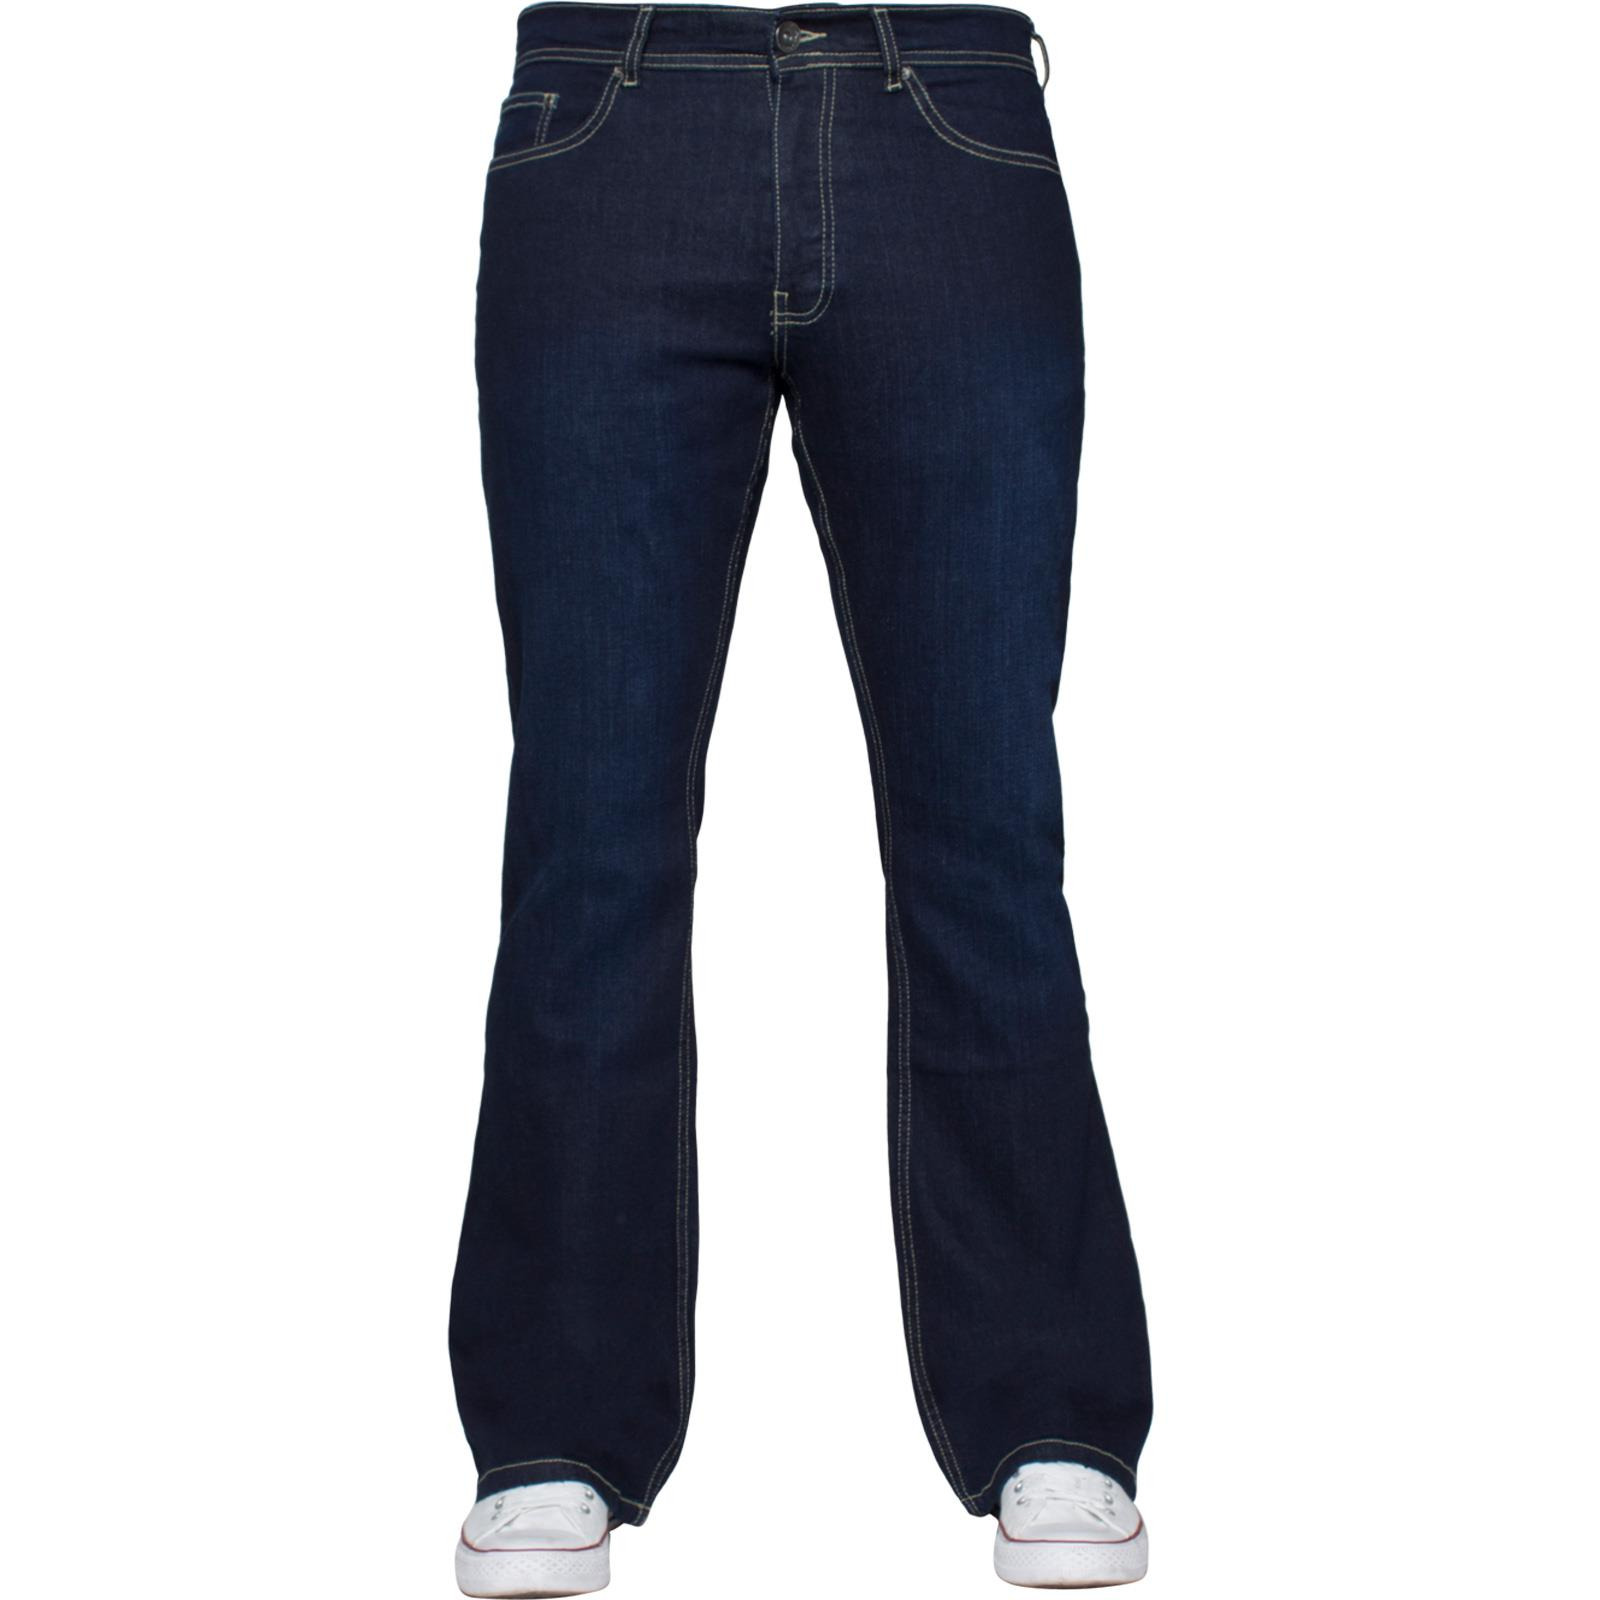 Mens-Straight-Bootcut-Jeans-Stretch-Denim-Pants-Regular-Fit-Big-Tall-All-Waists thumbnail 50